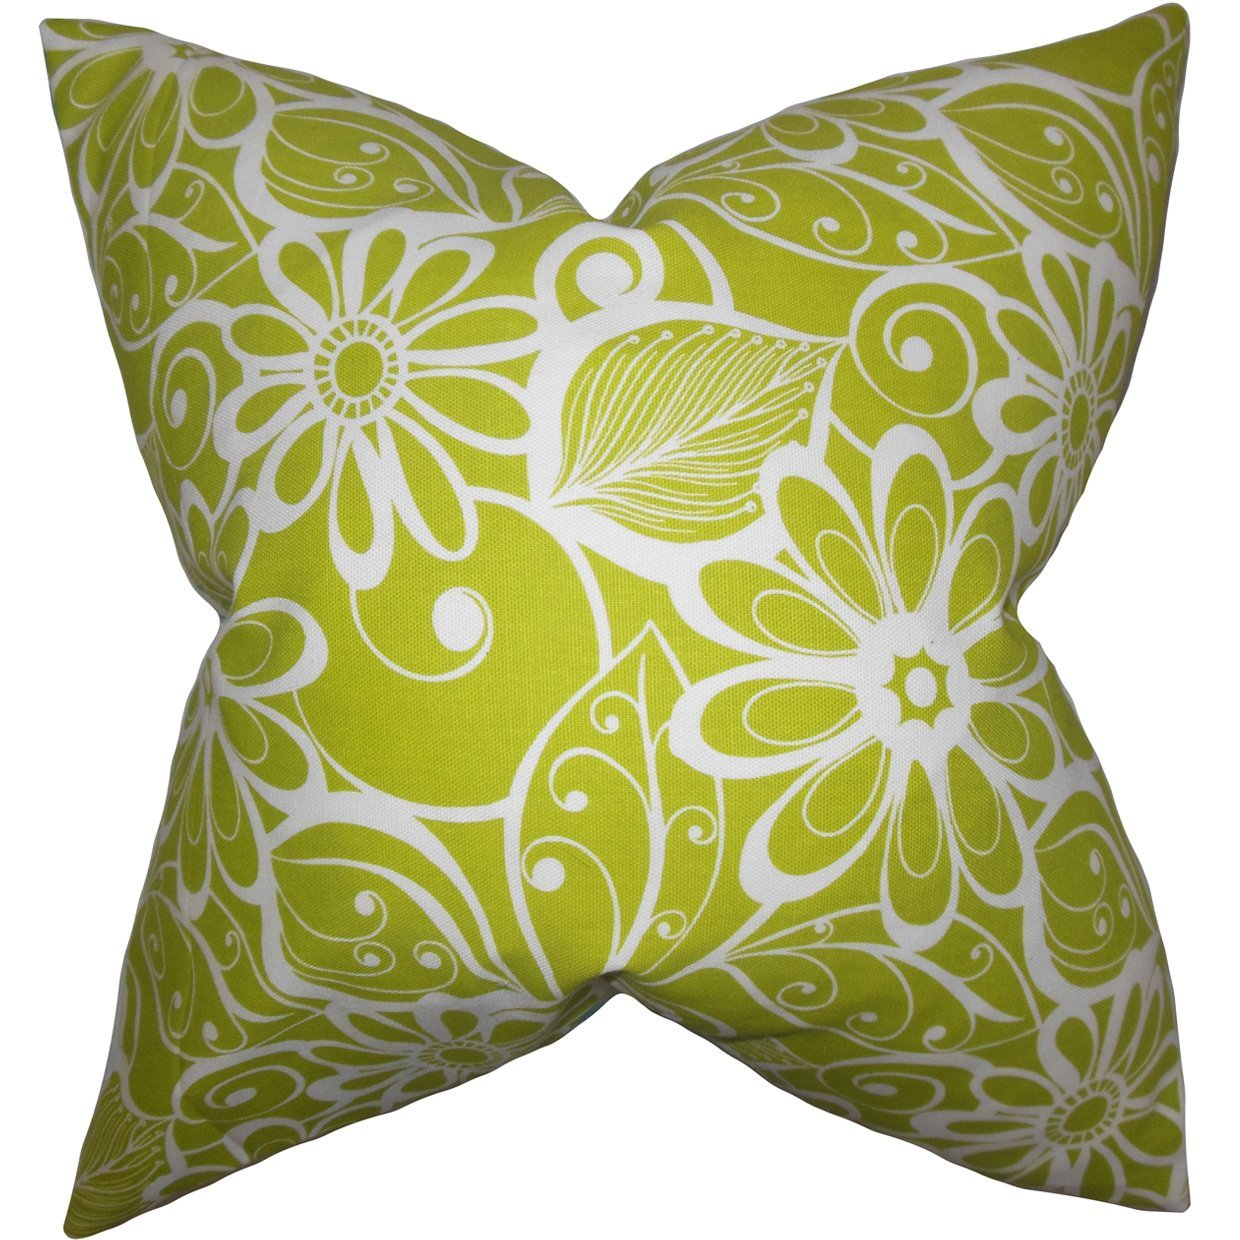 Green Synthetic Floral Contemporary Throw Pillow Cover